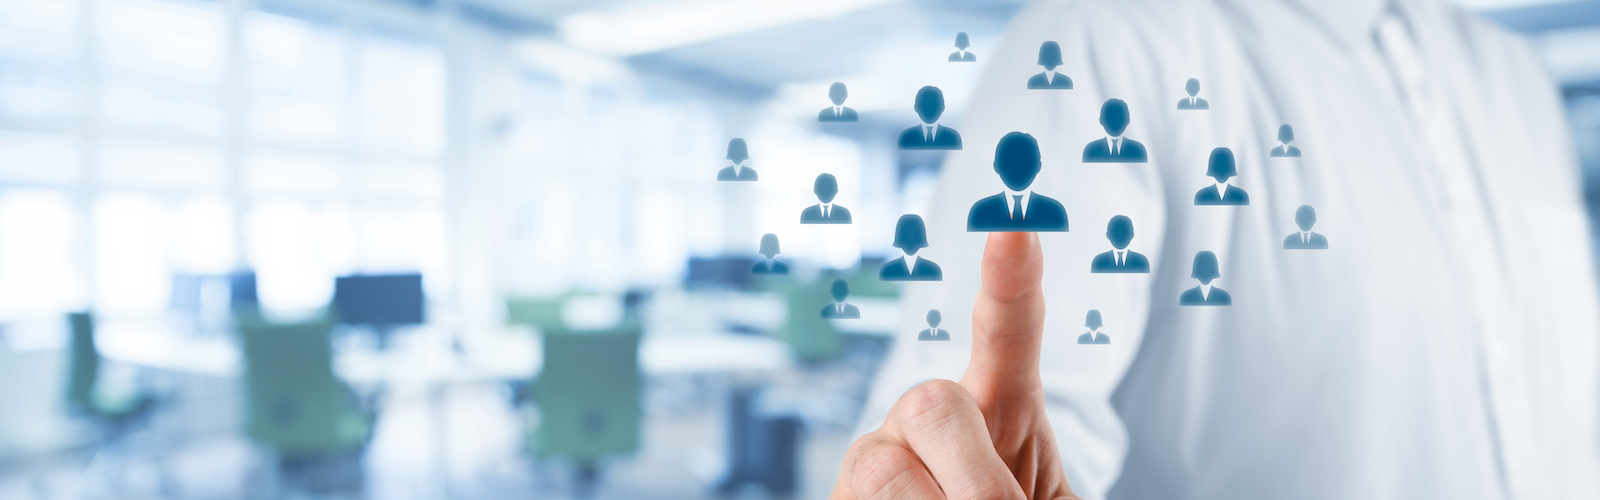 What is Human Capital Management (HCM) and how does training fit in to HCM?